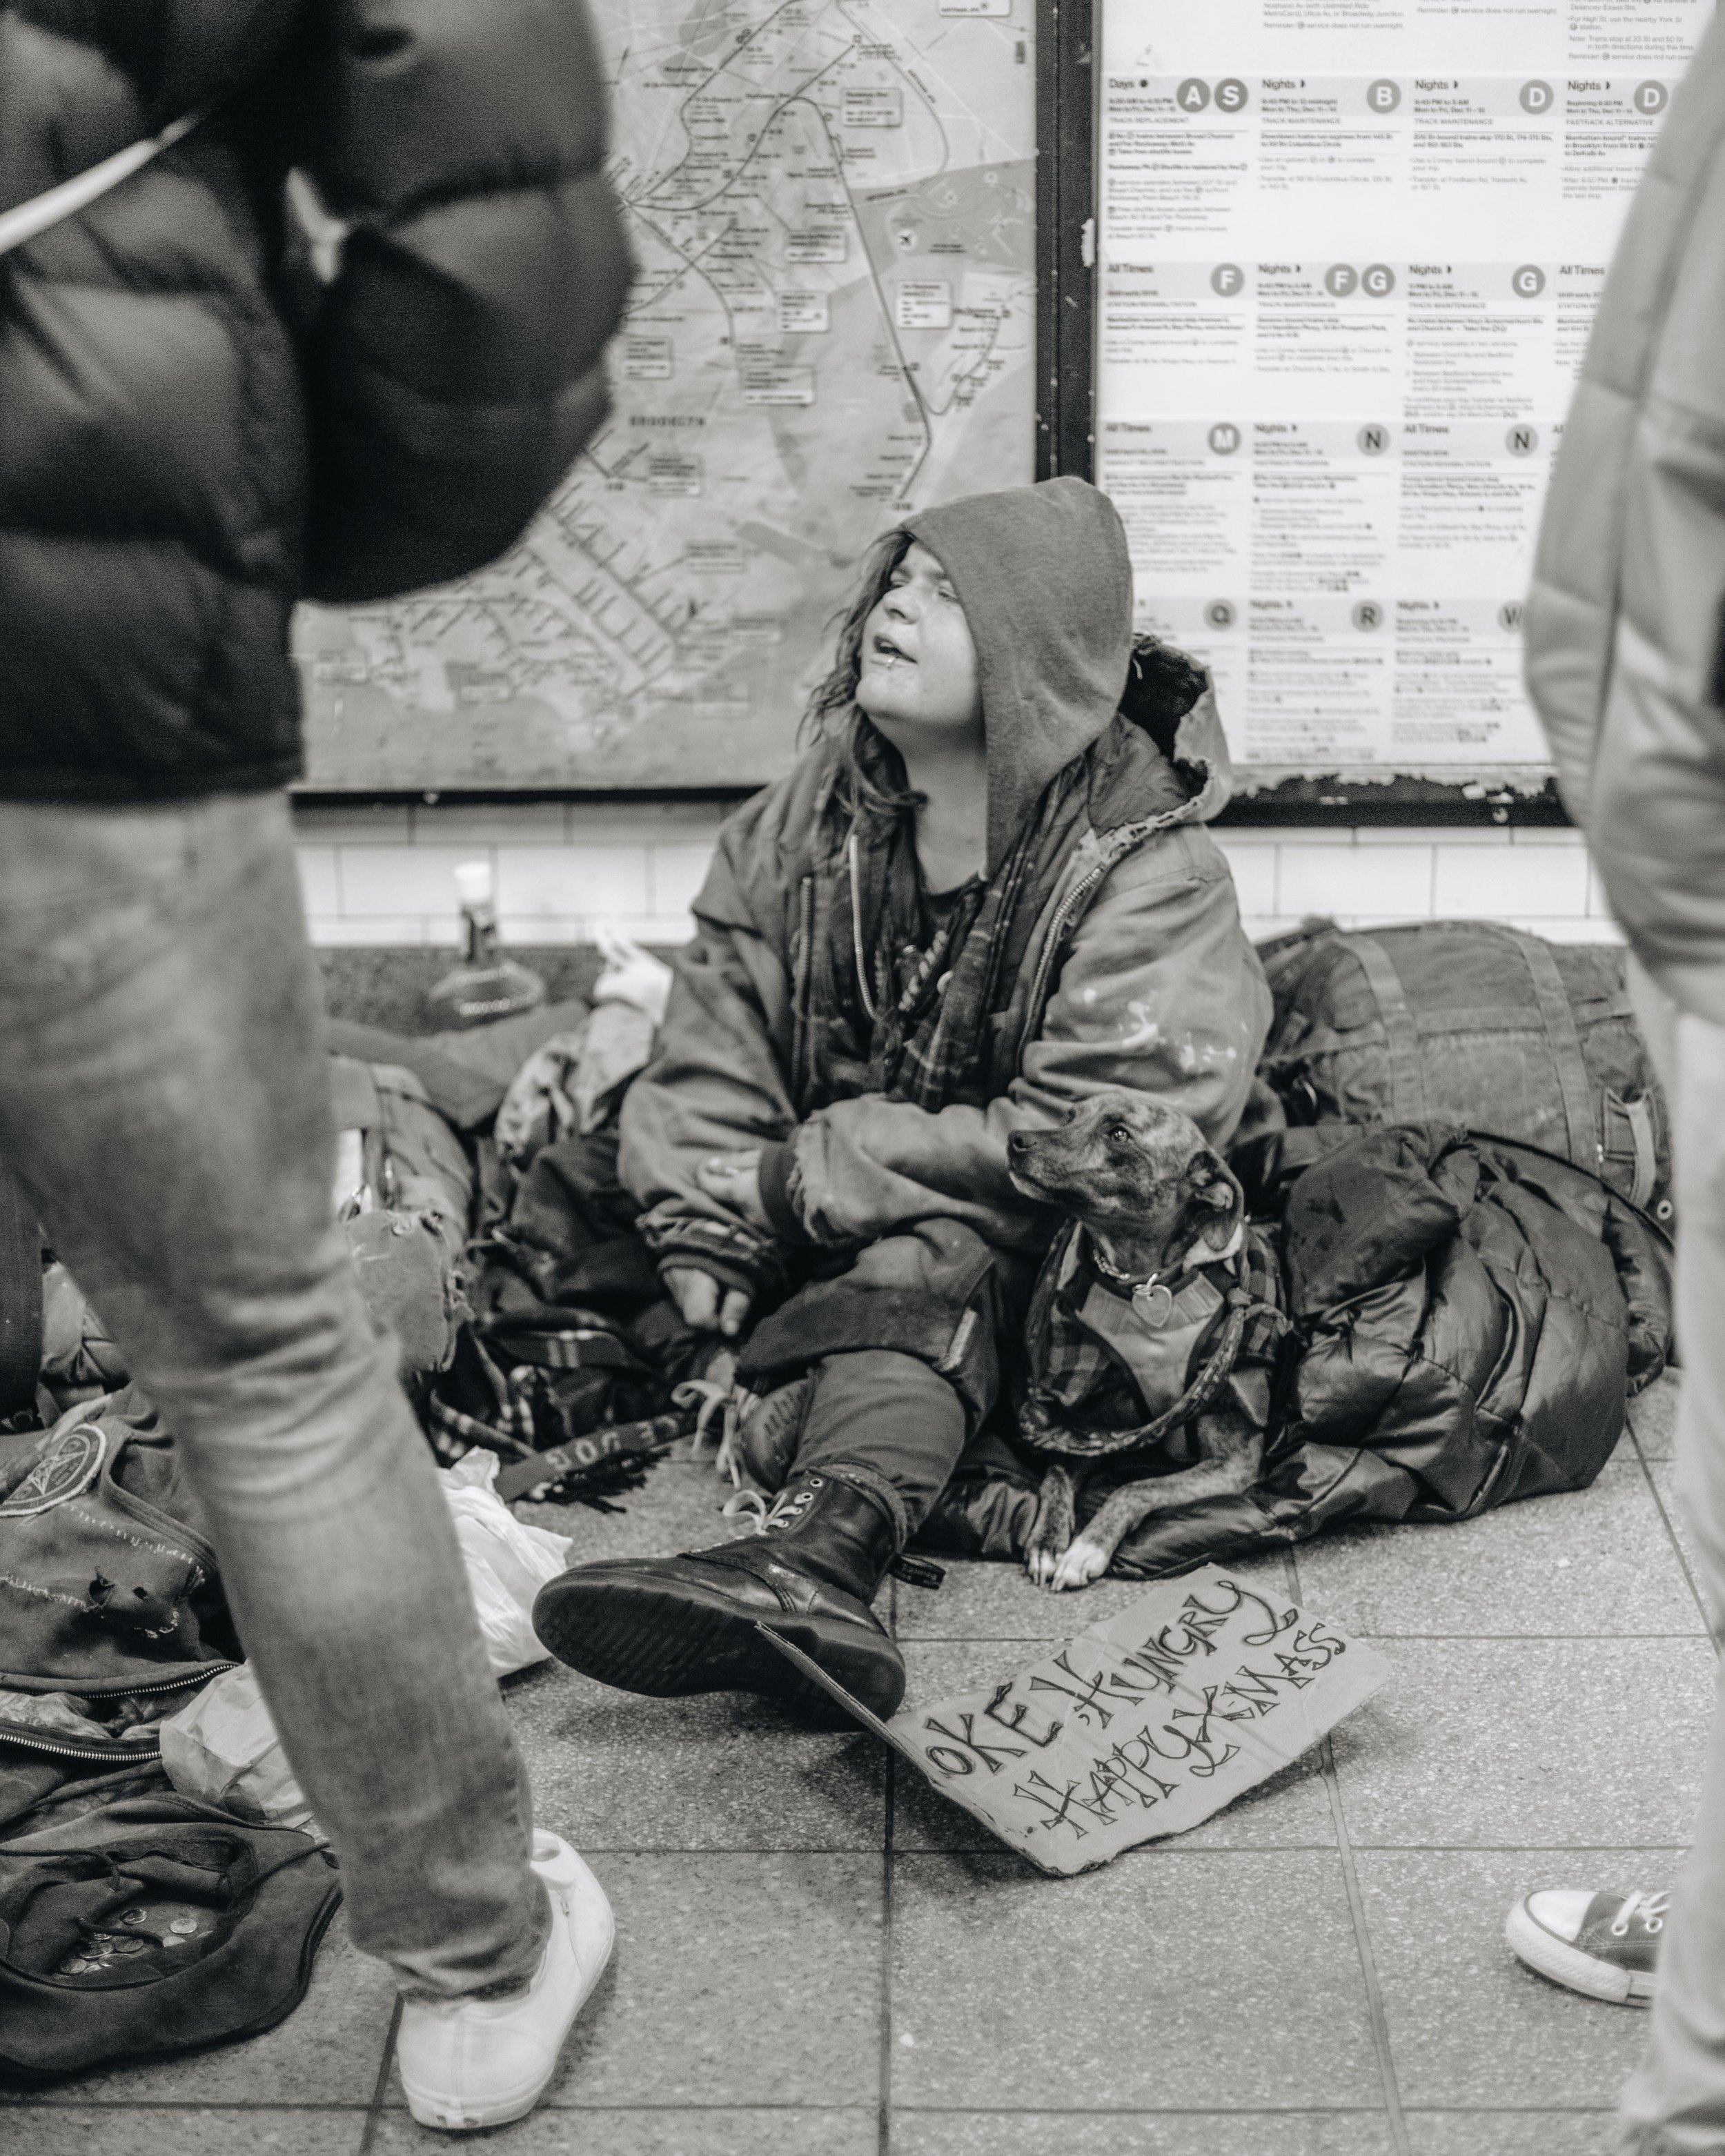 Union Square, NYC. Subway entrances are also a popular place for the homeless, rather protected from the elements and near a lot of foot traffic for potential donations.